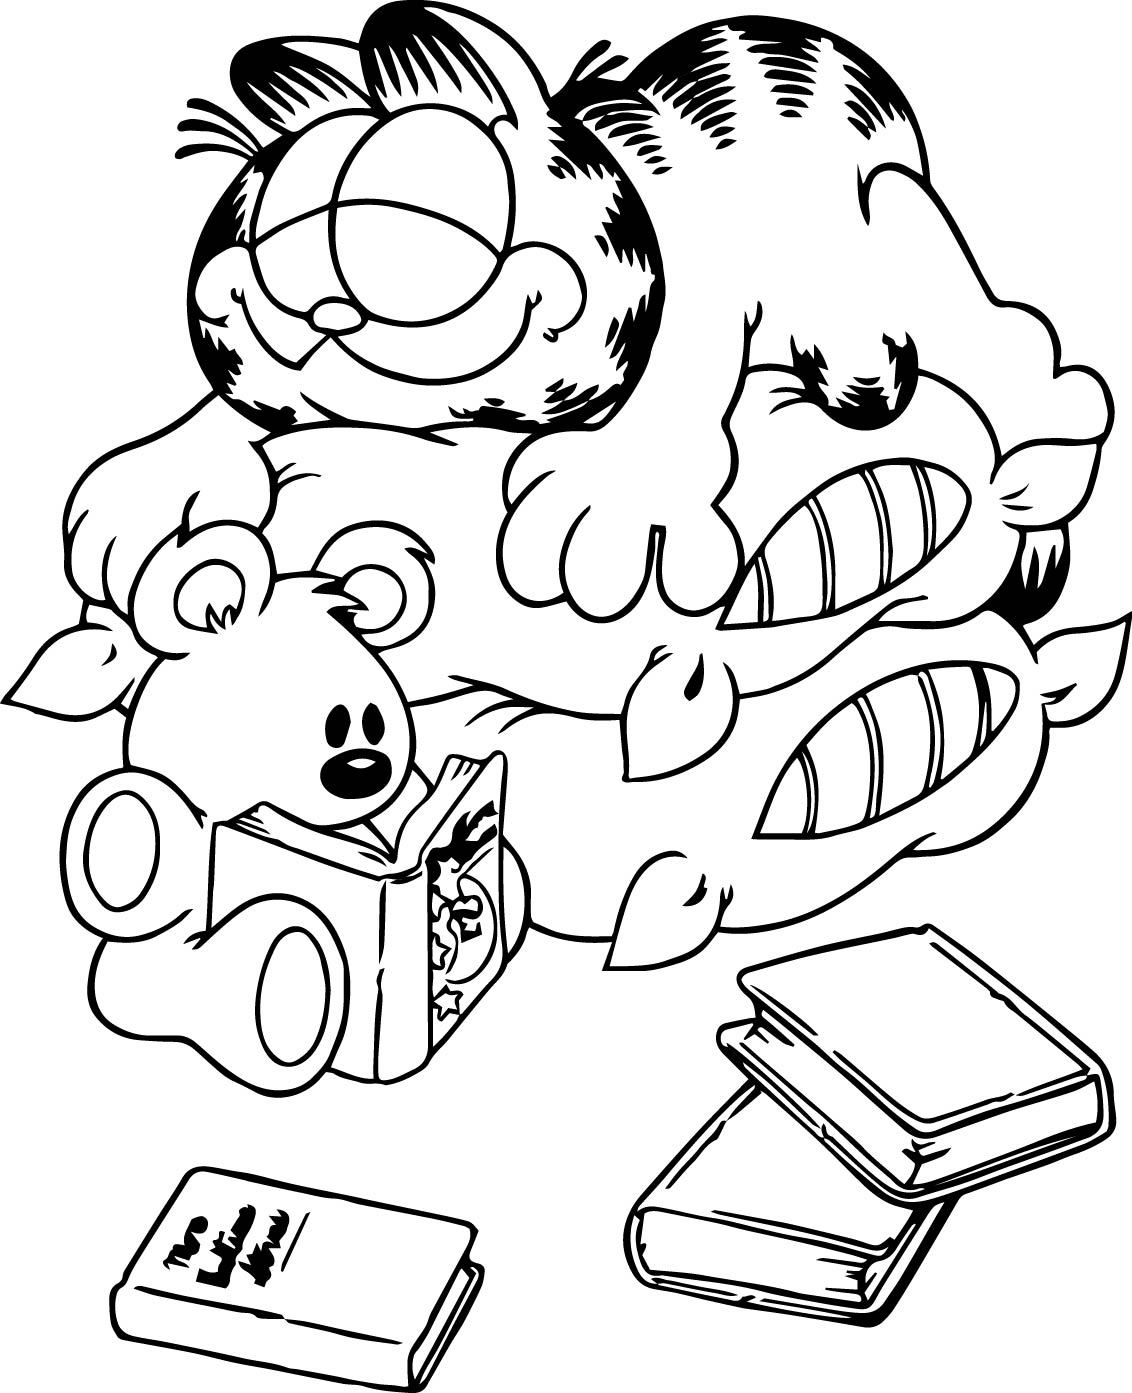 1132x1393 Awesome Garfield Coloring Pages Of Pict For Passover Popular